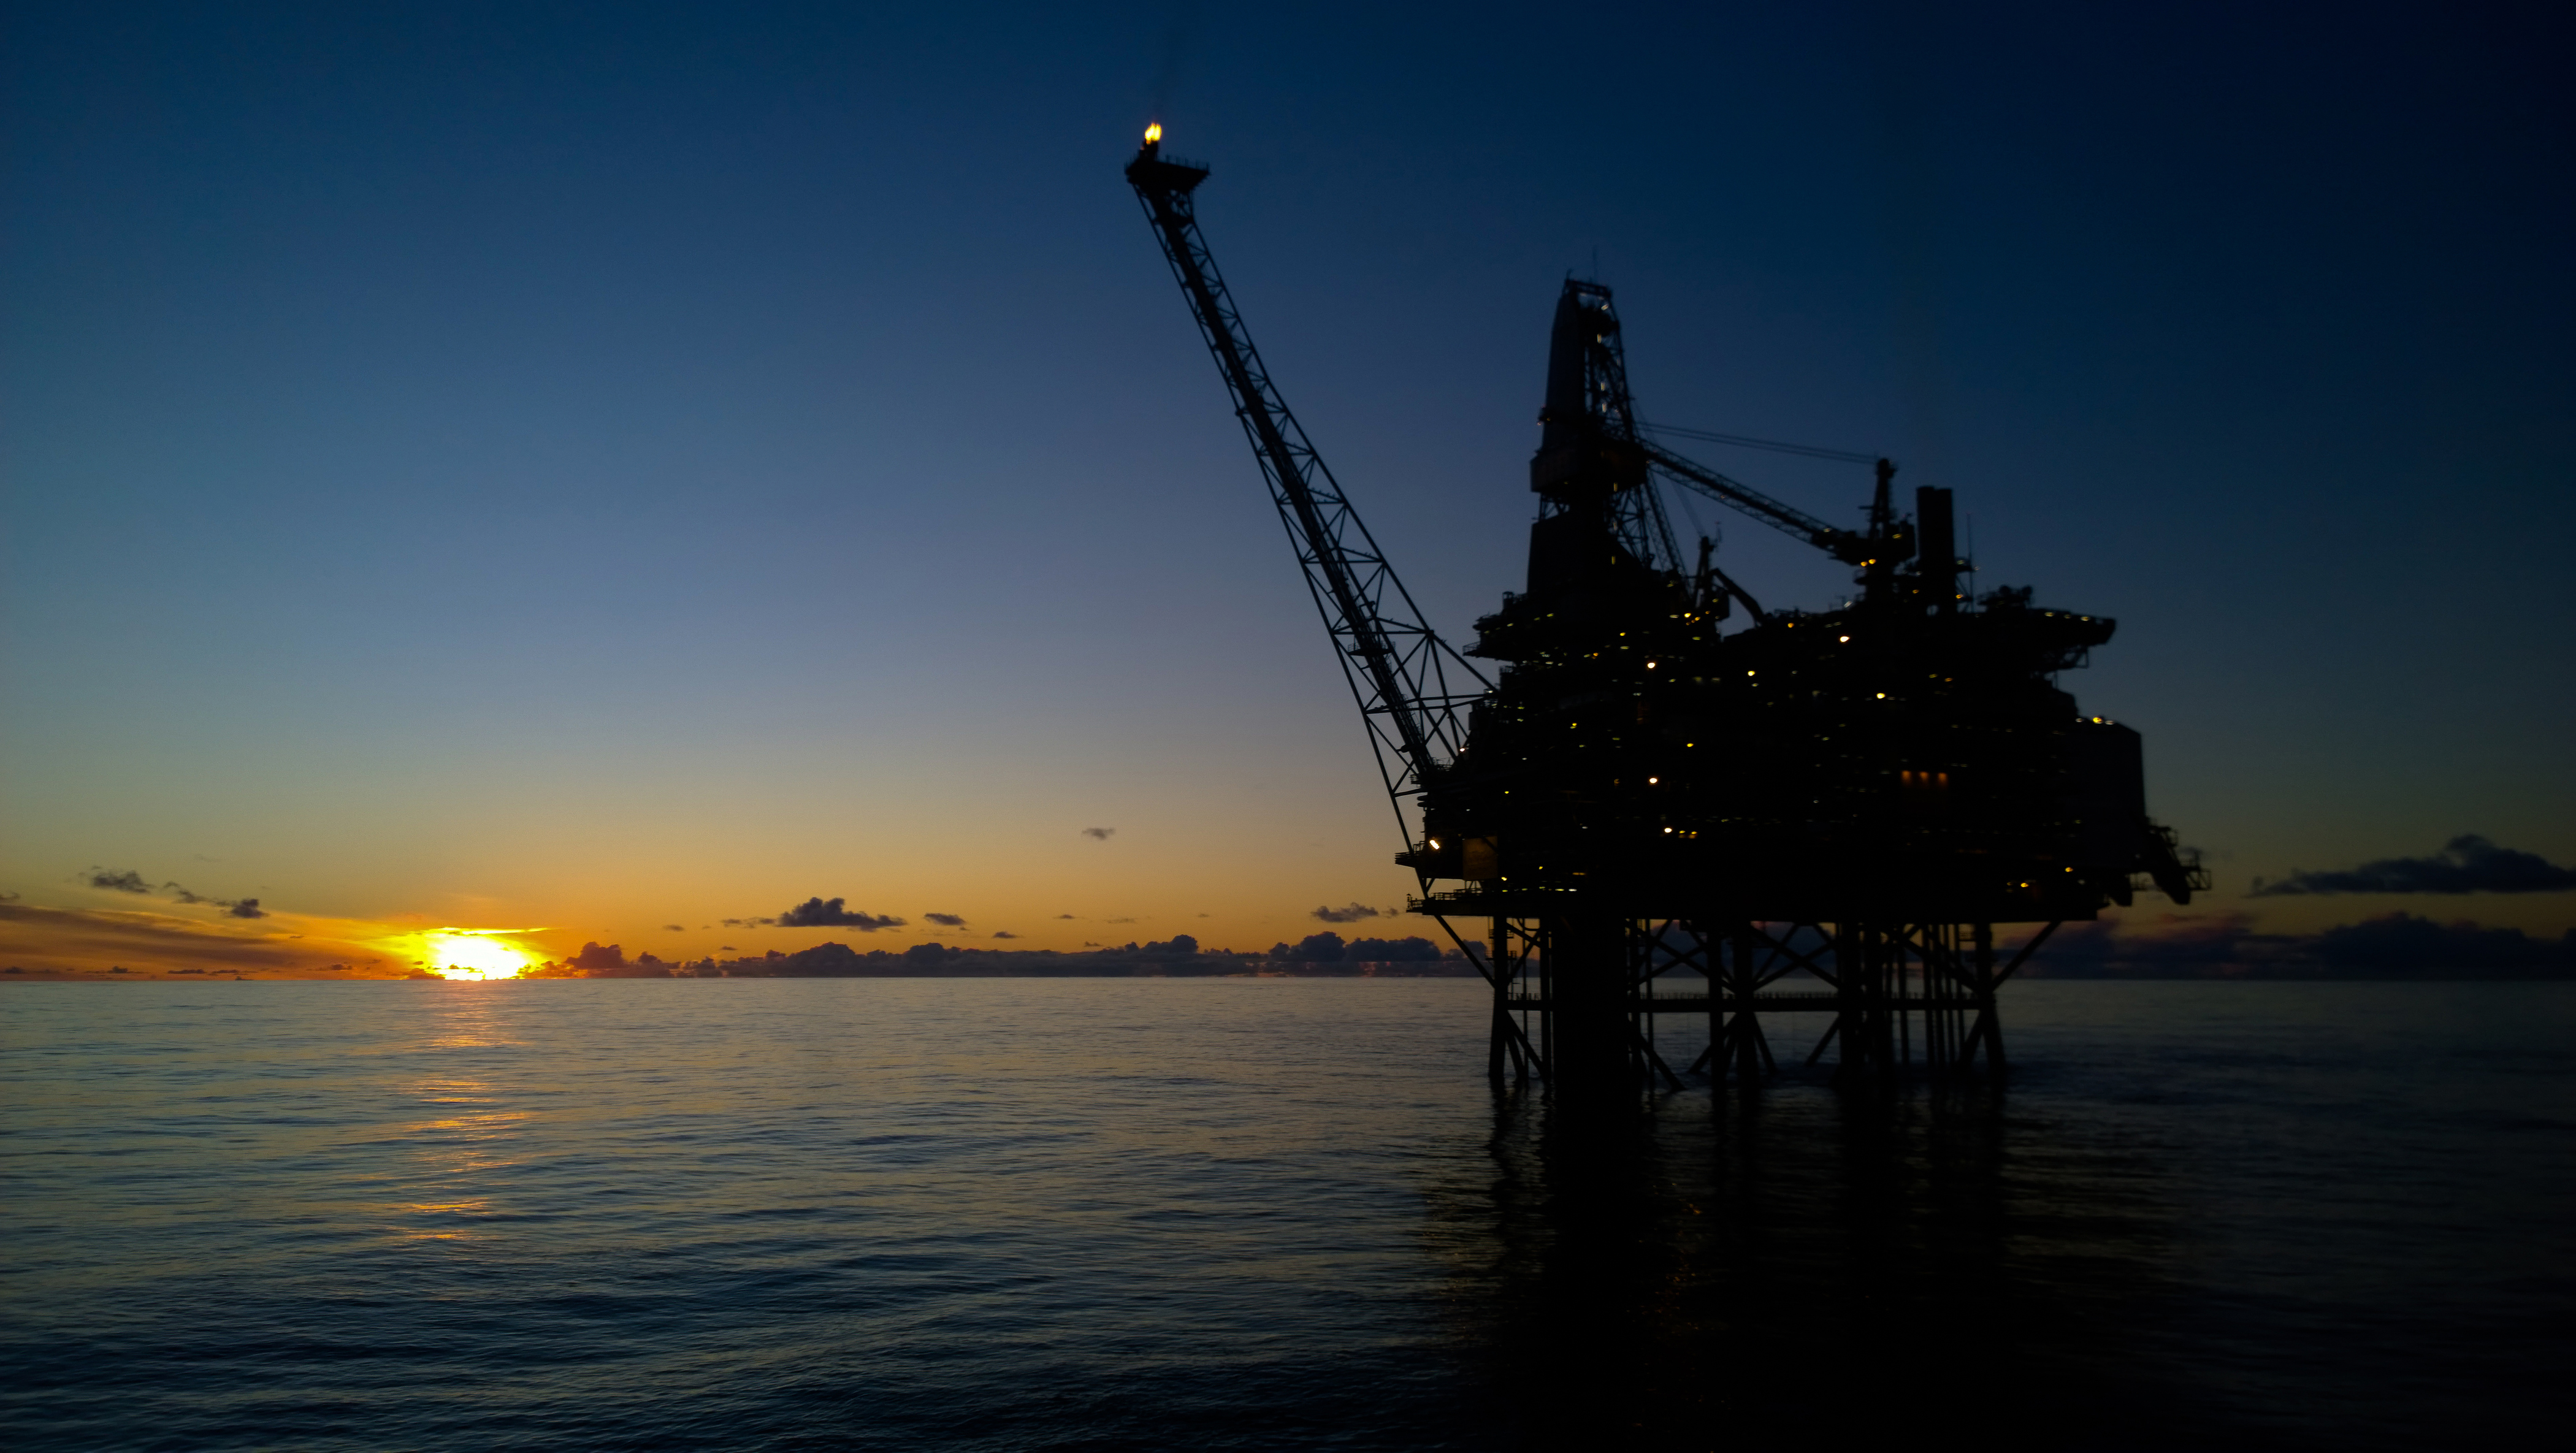 Offshore oil rig in sunset